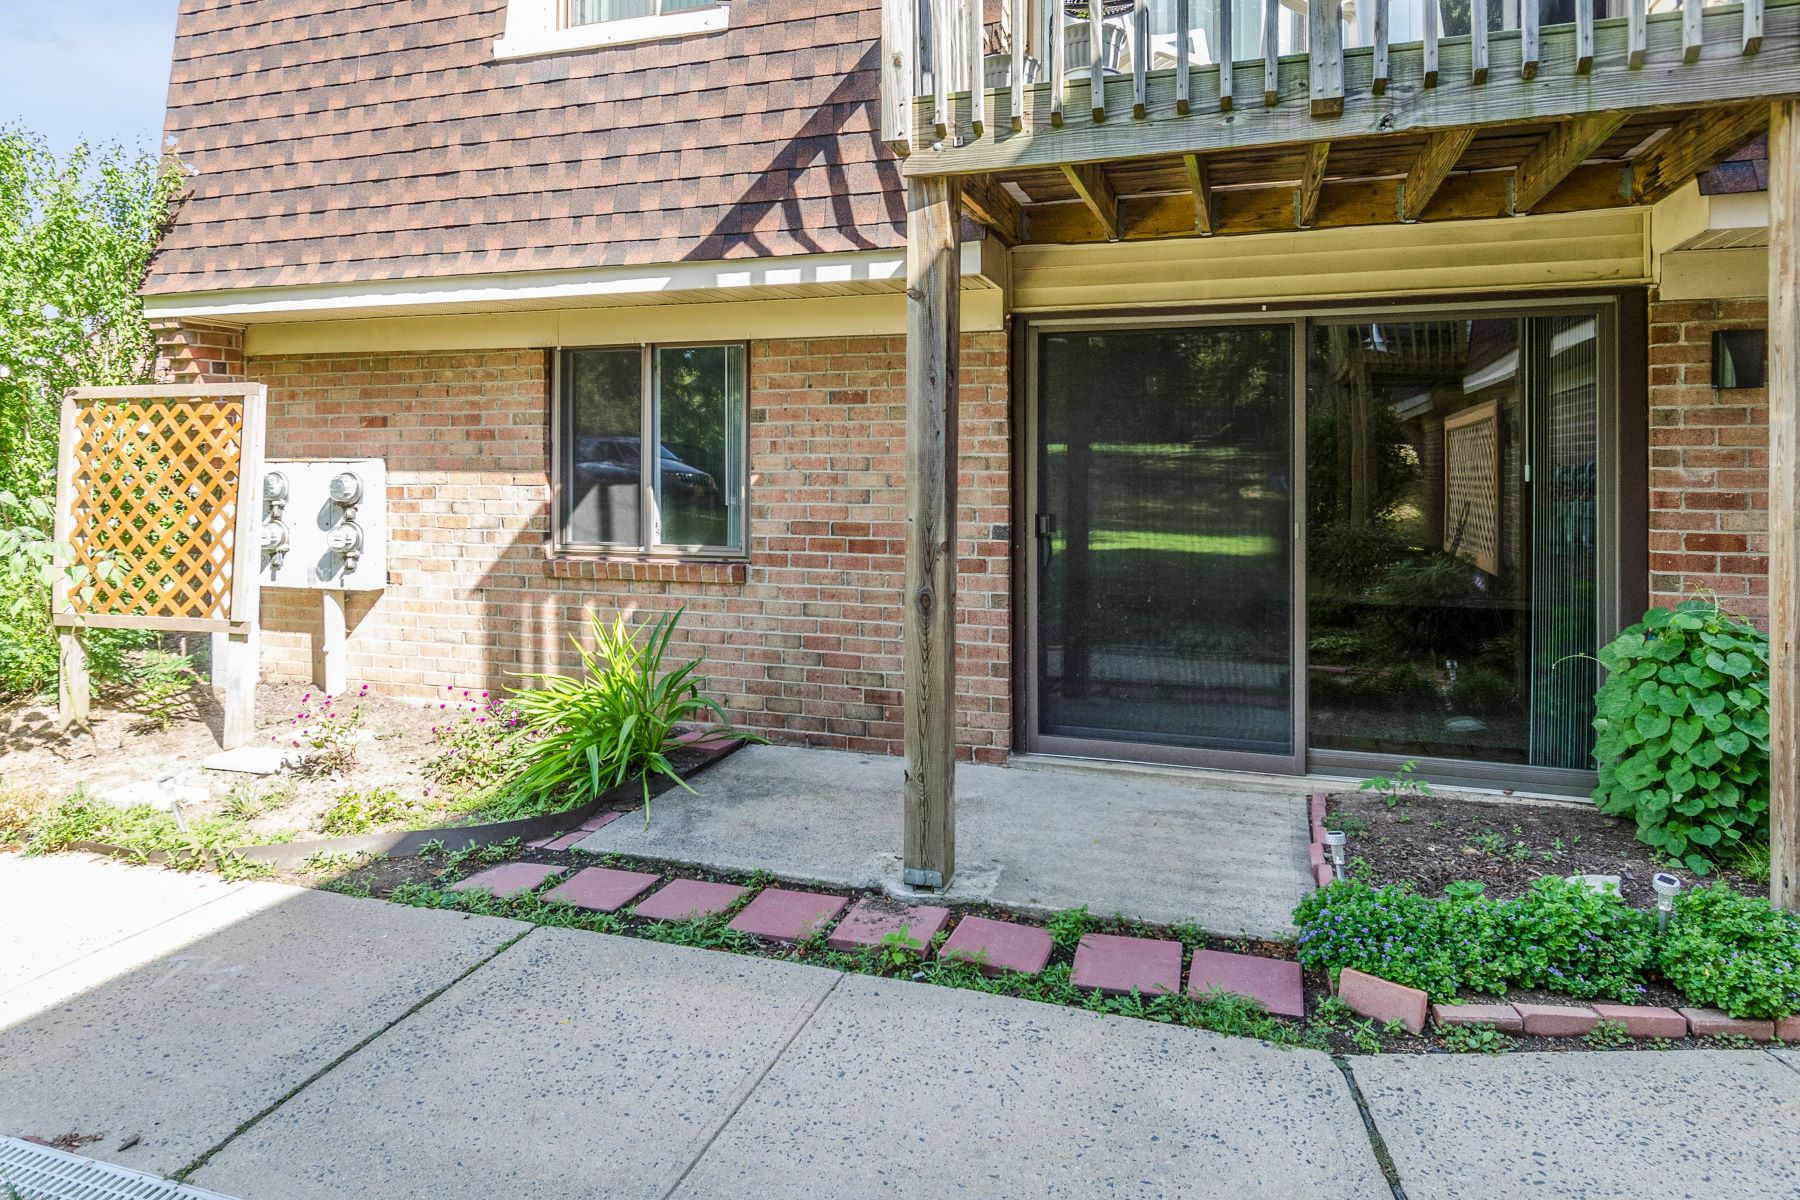 Commuters Will Adore this Meadow Woods Condo 807 Meadow Woods Lane, Lawrence Township, New Jersey 08648 États-Unis